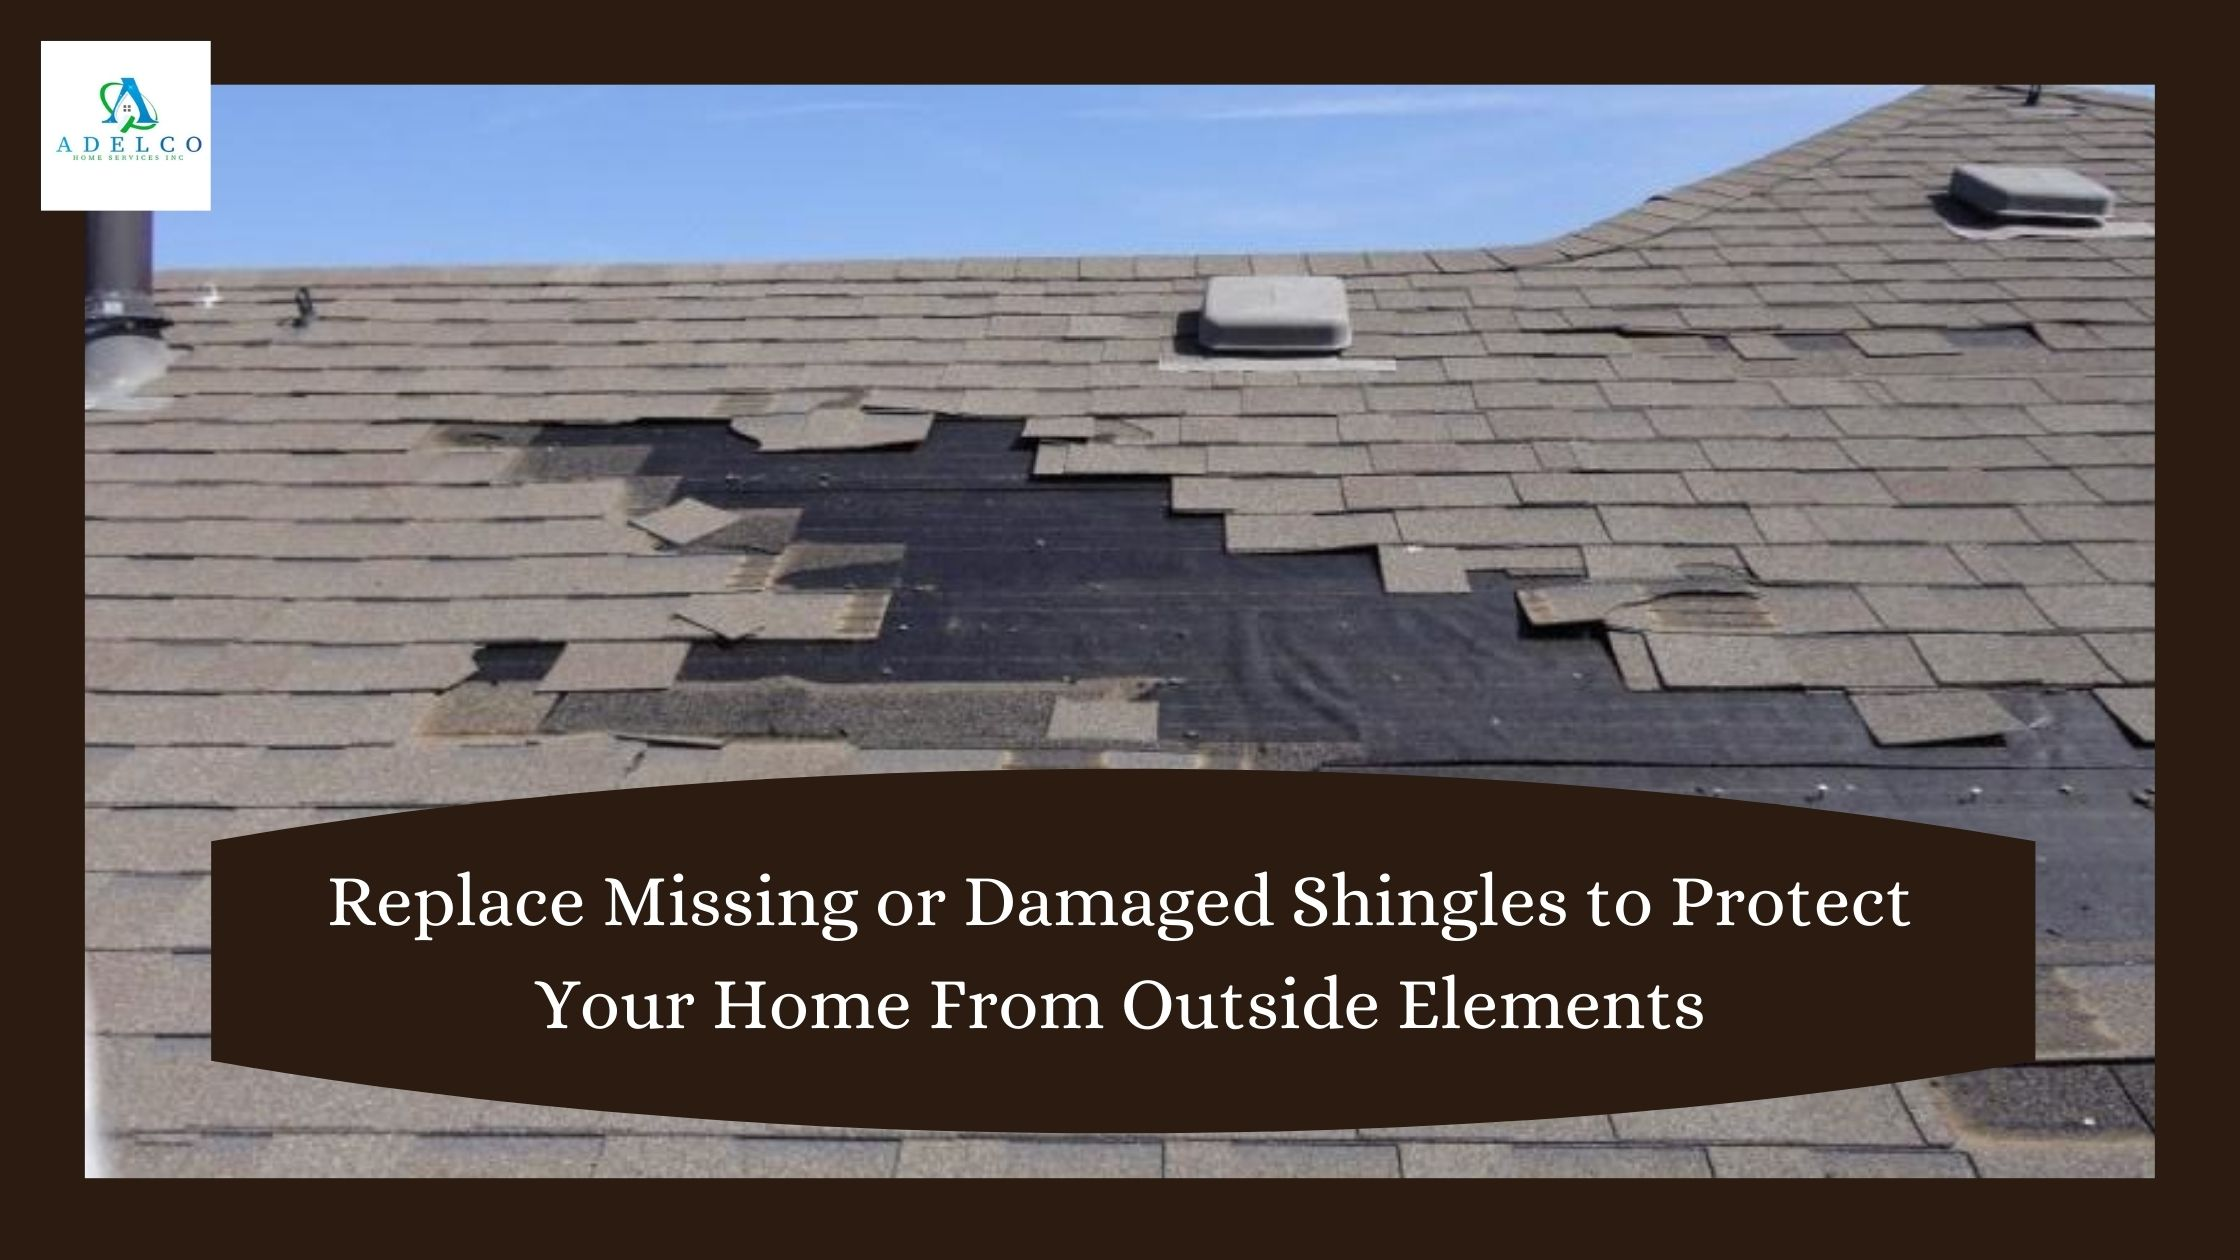 Replace Missing or Damaged Shingles to Protect Your Home From Outside Elements